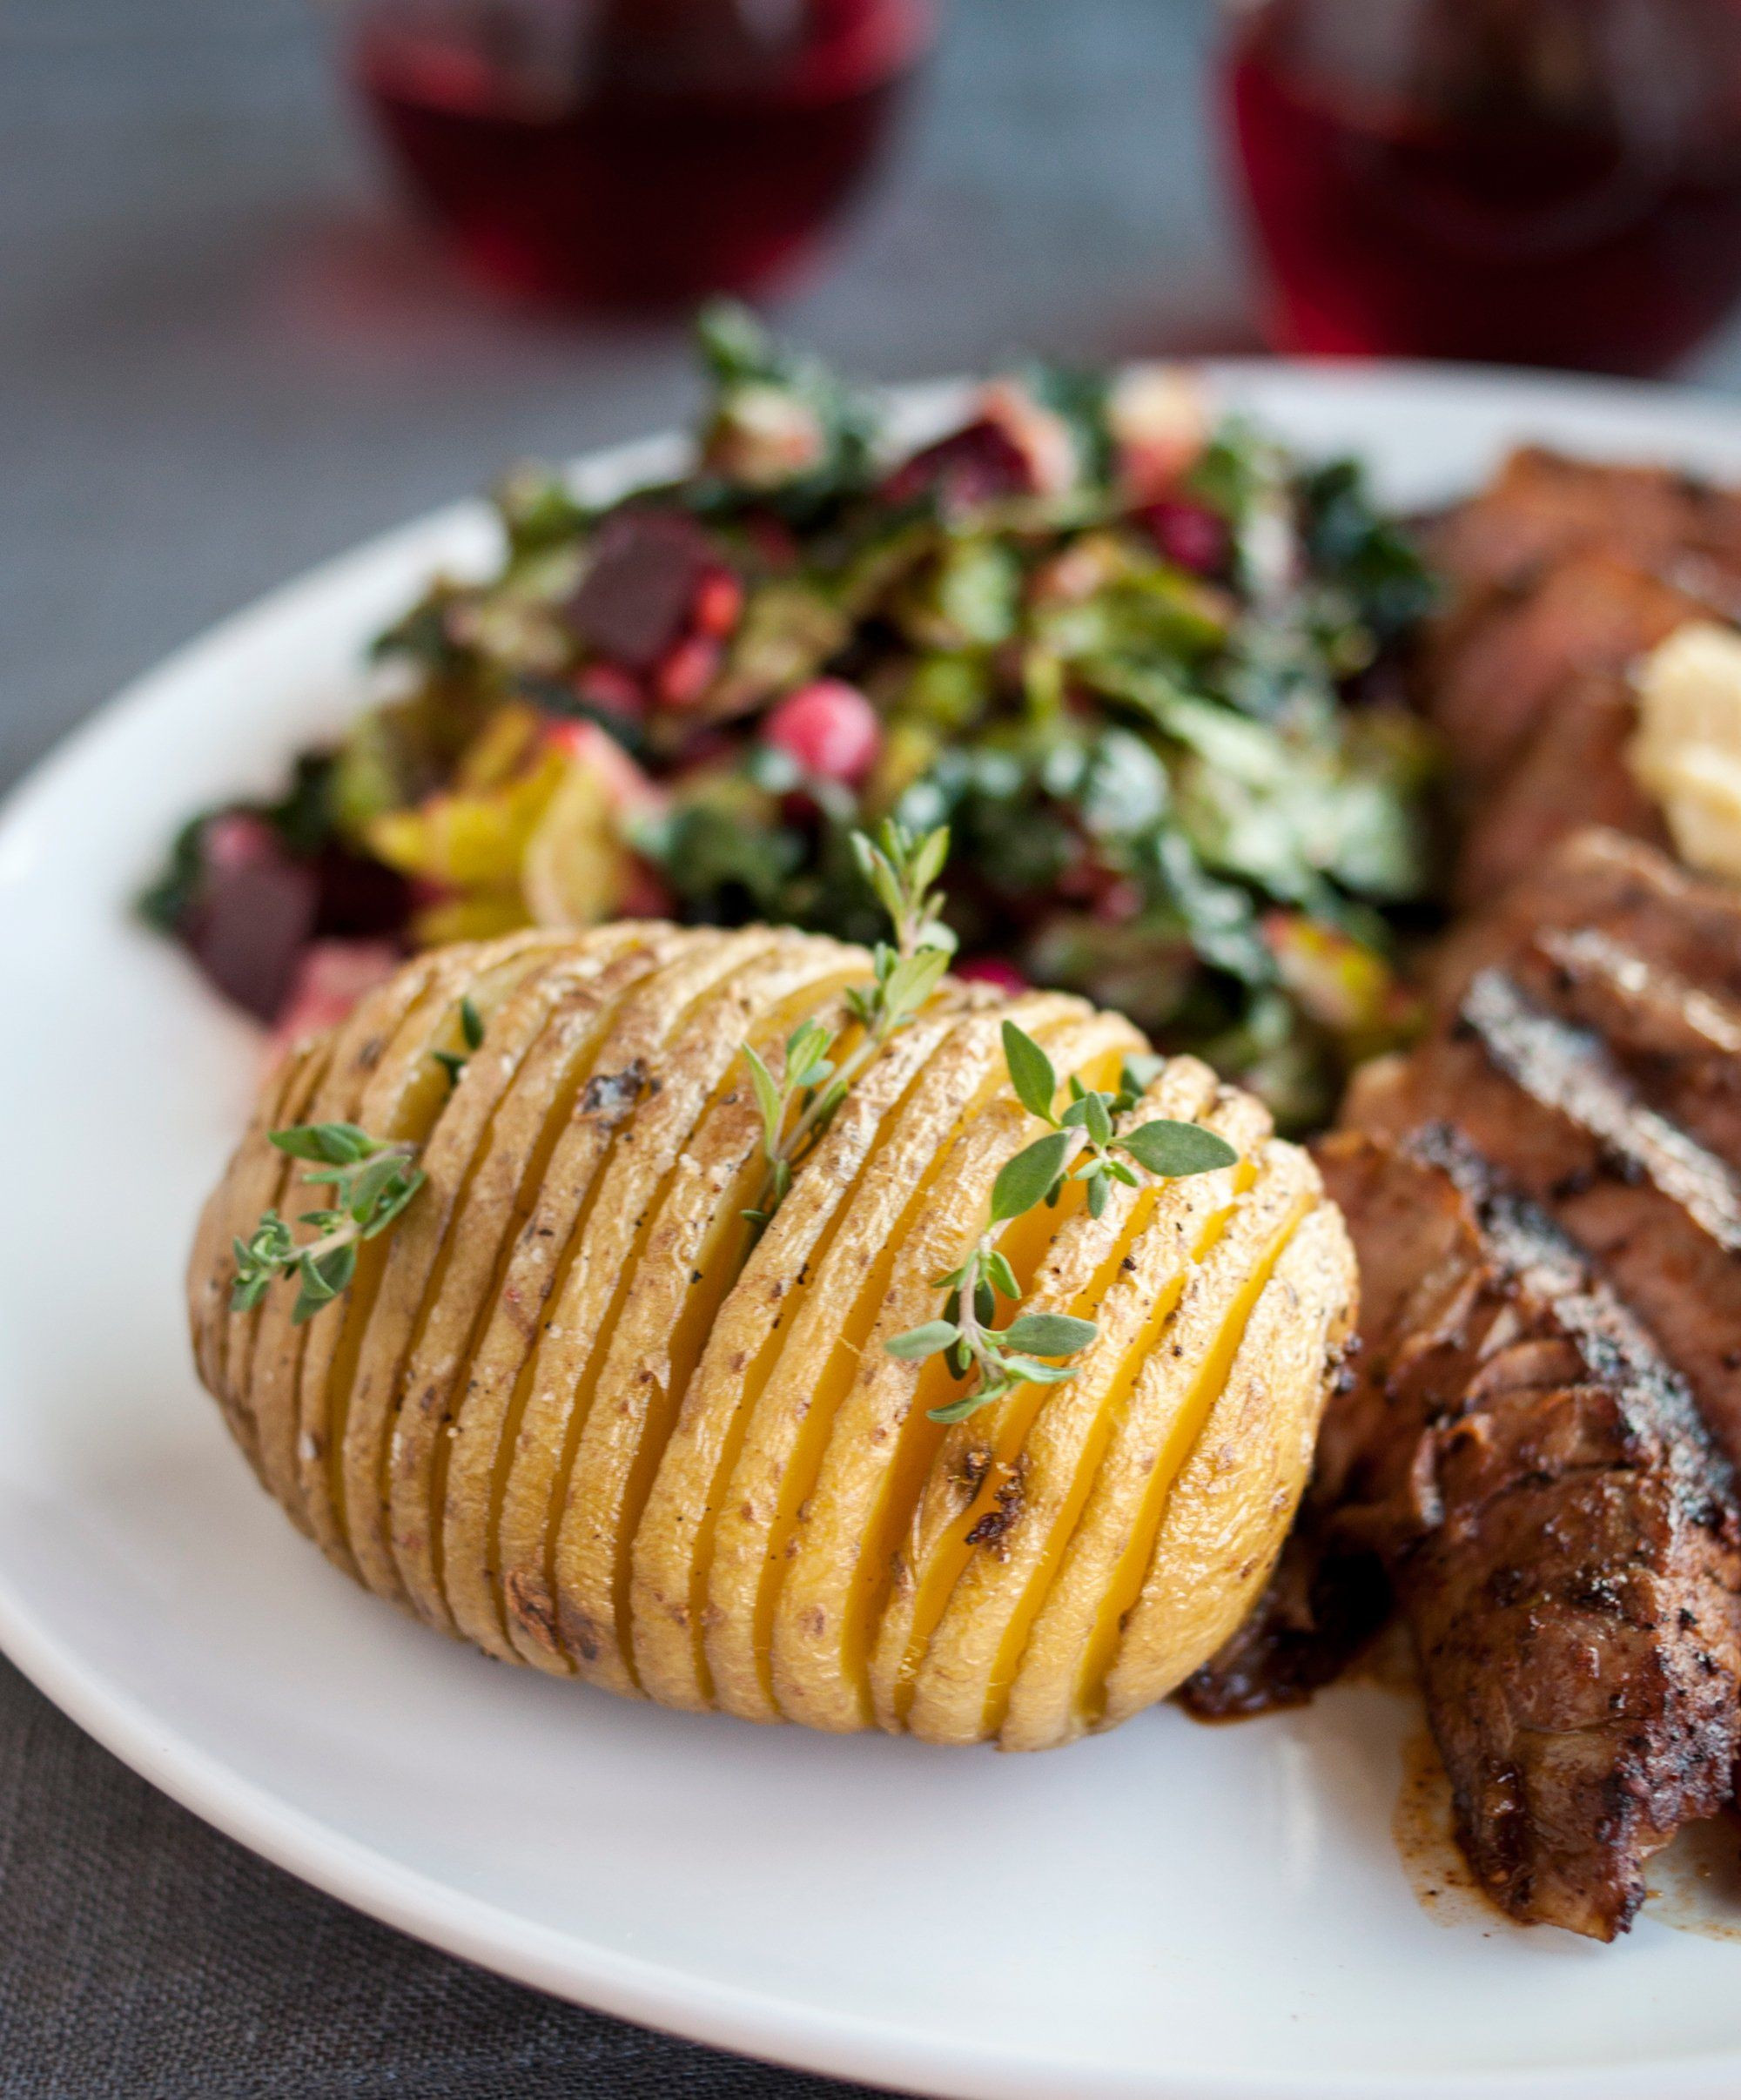 Pork Chop Side Dishes Recipes  These Are the Very Best Sides for Pork Chops